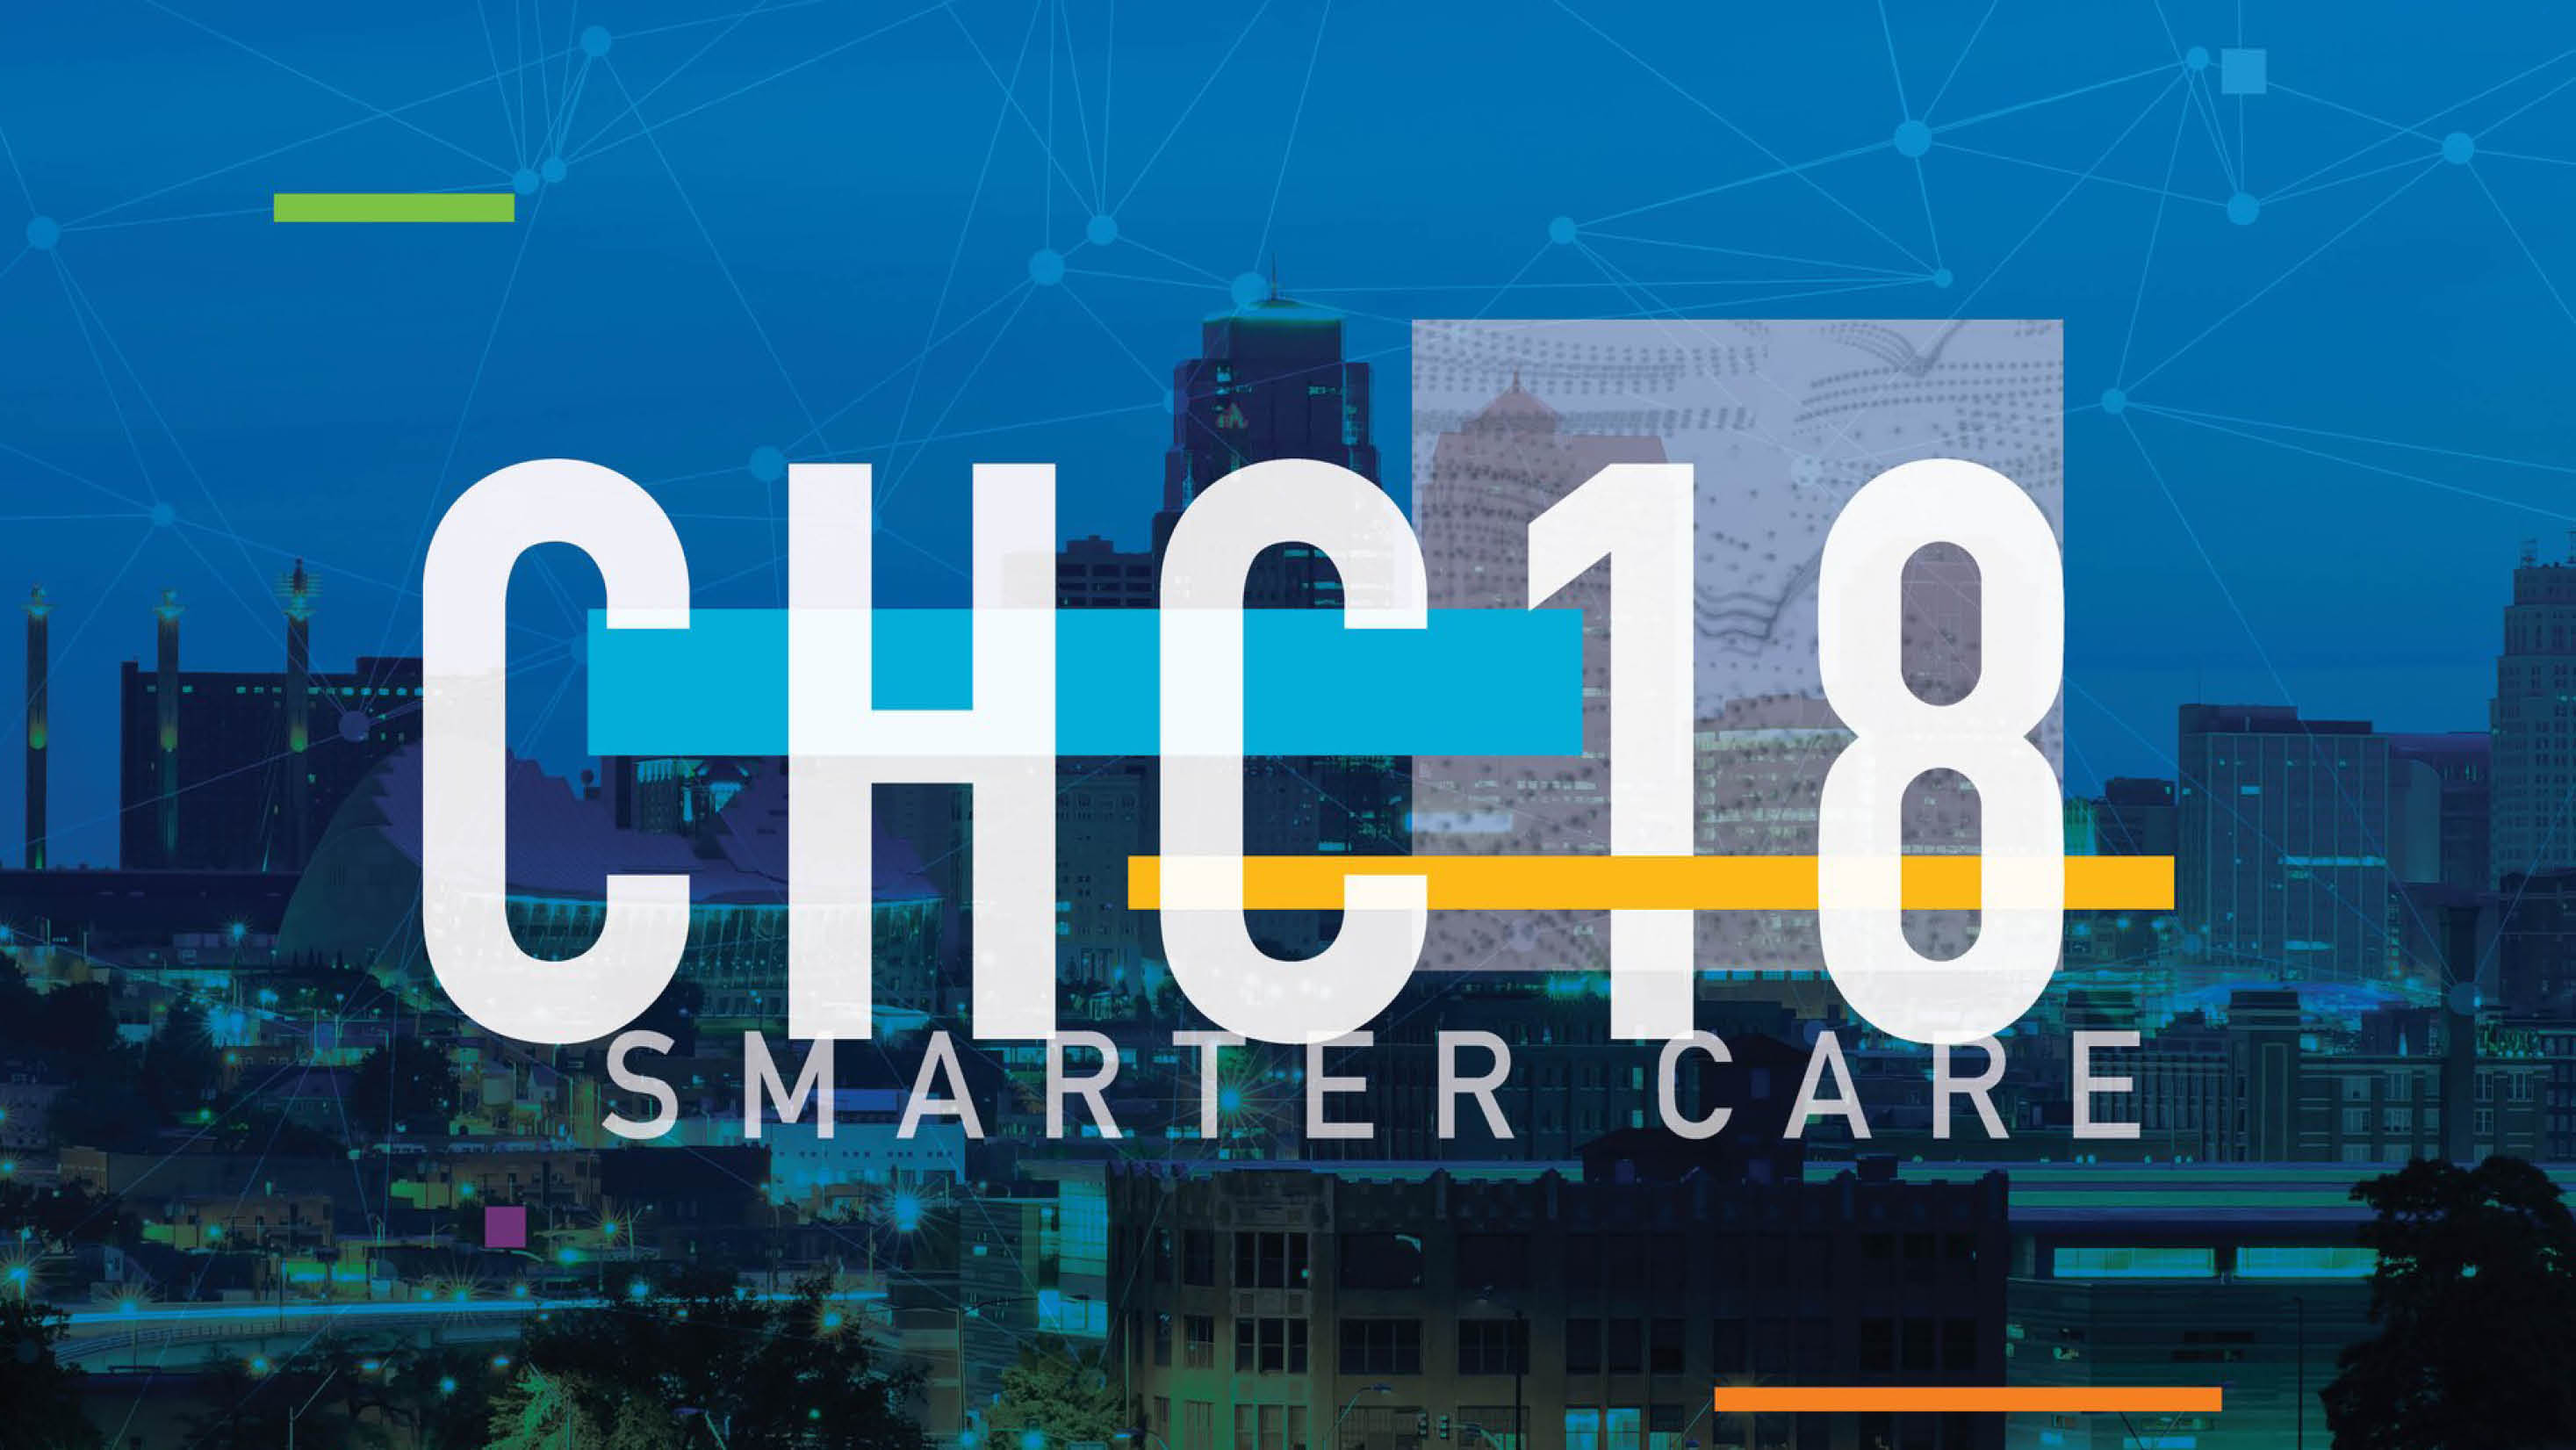 Cerner Health Conference Brings Health Care and Business